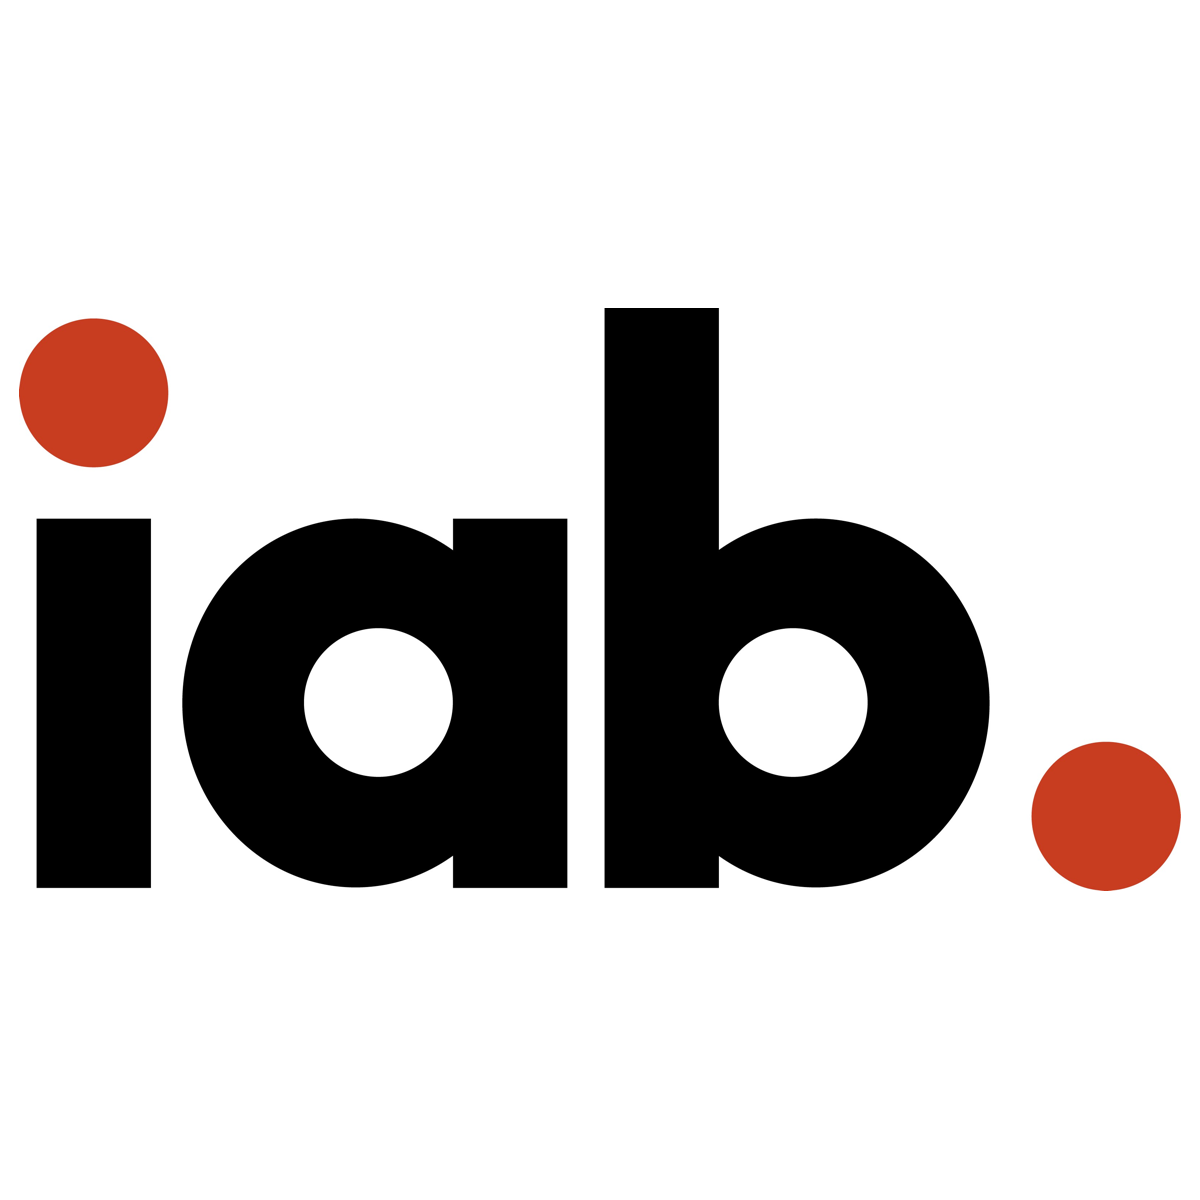 Beachfront Aligns with IAB Tech Lab & Google, Supports app-ads.txt